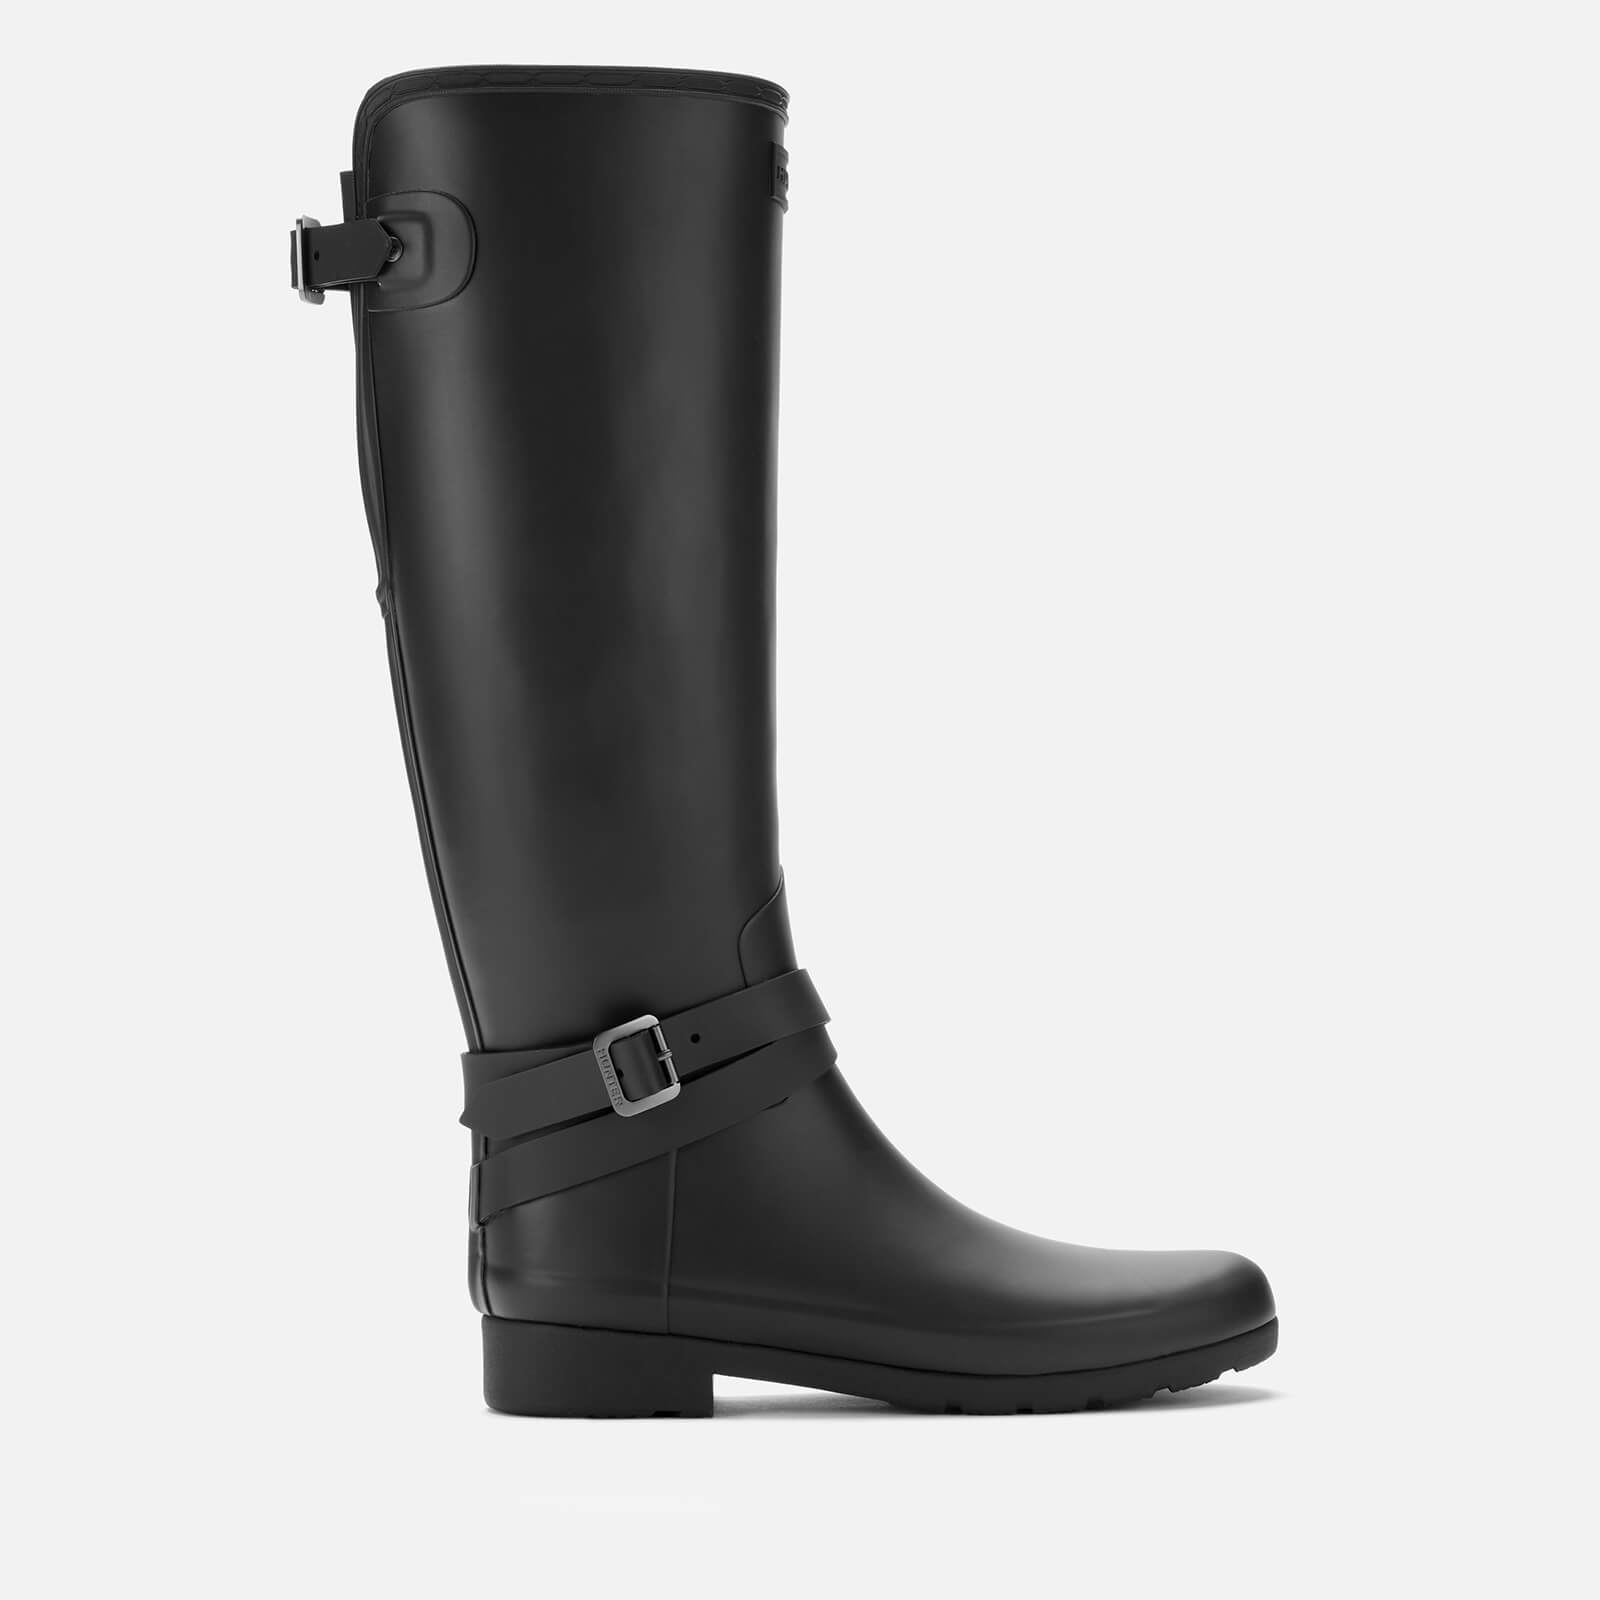 Hunter Women's Refined Back Adjustable Tall Boots with Ankle Strap - Black